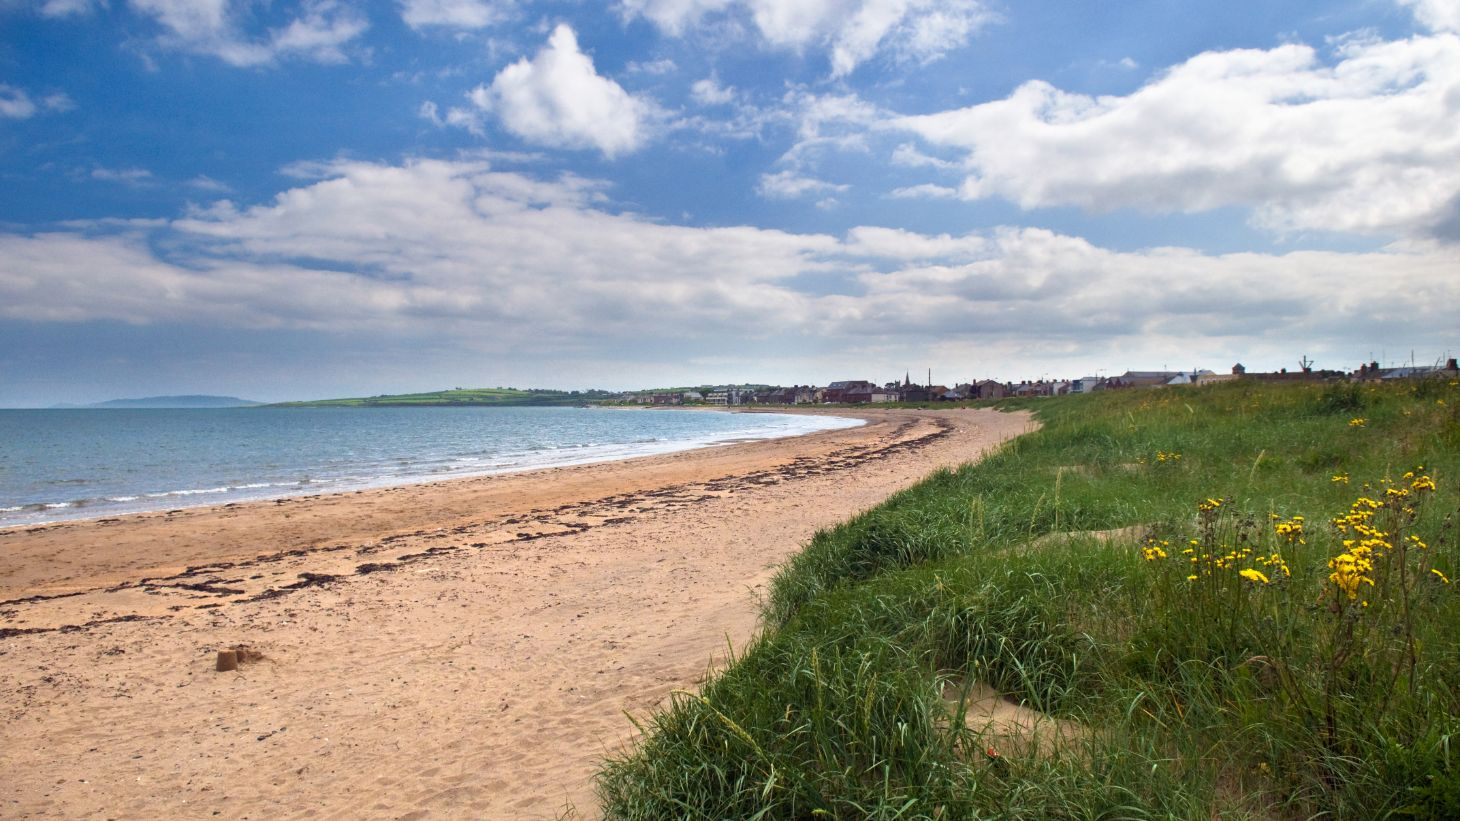 Get involved with a great cause and try a beach clean-up.